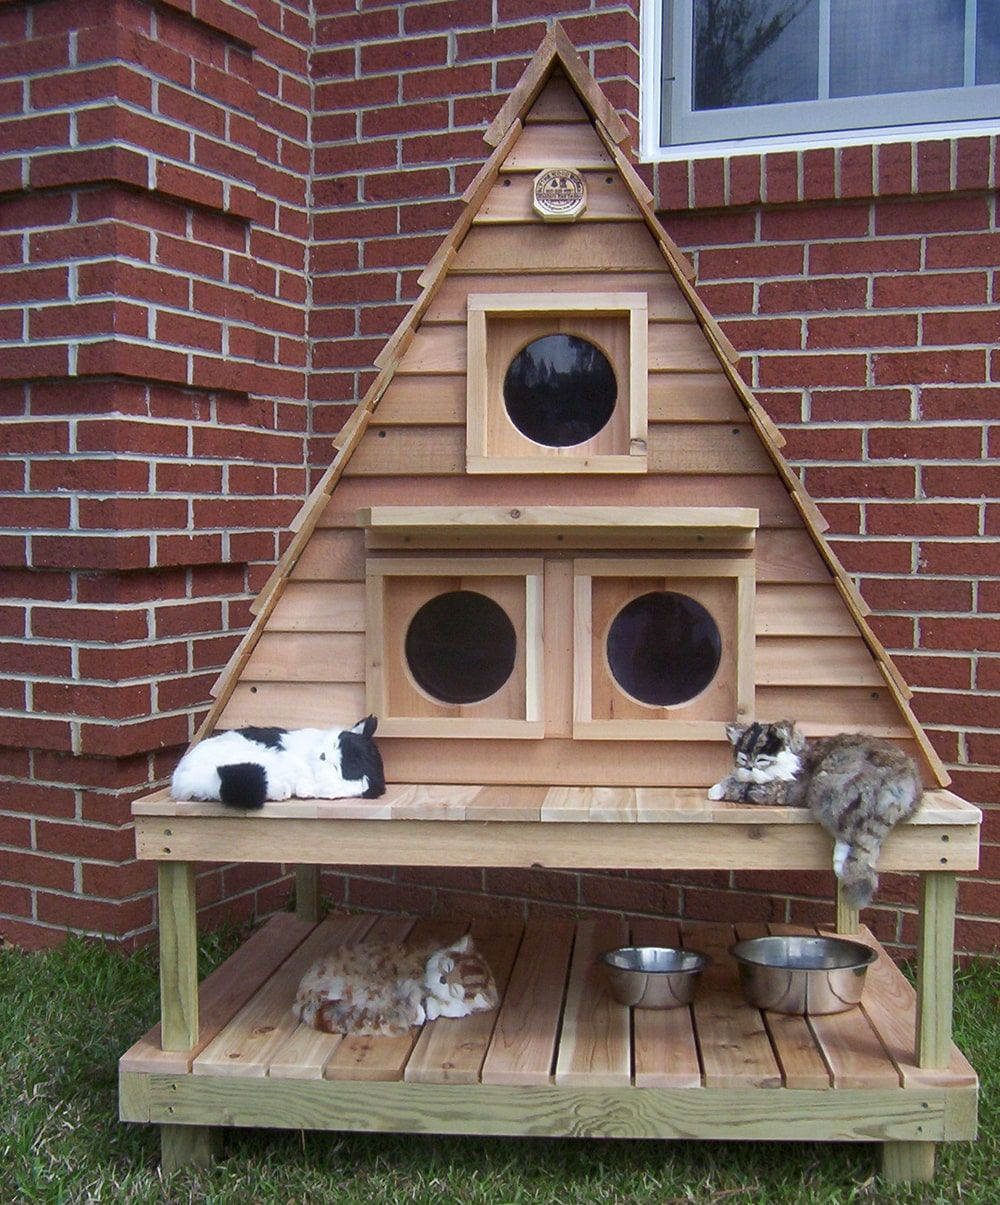 Outdoor Cat House For 3 6 Cats Customizable Free Shipping Available Cat House Diy Outdoor Cat House Cat House Plans